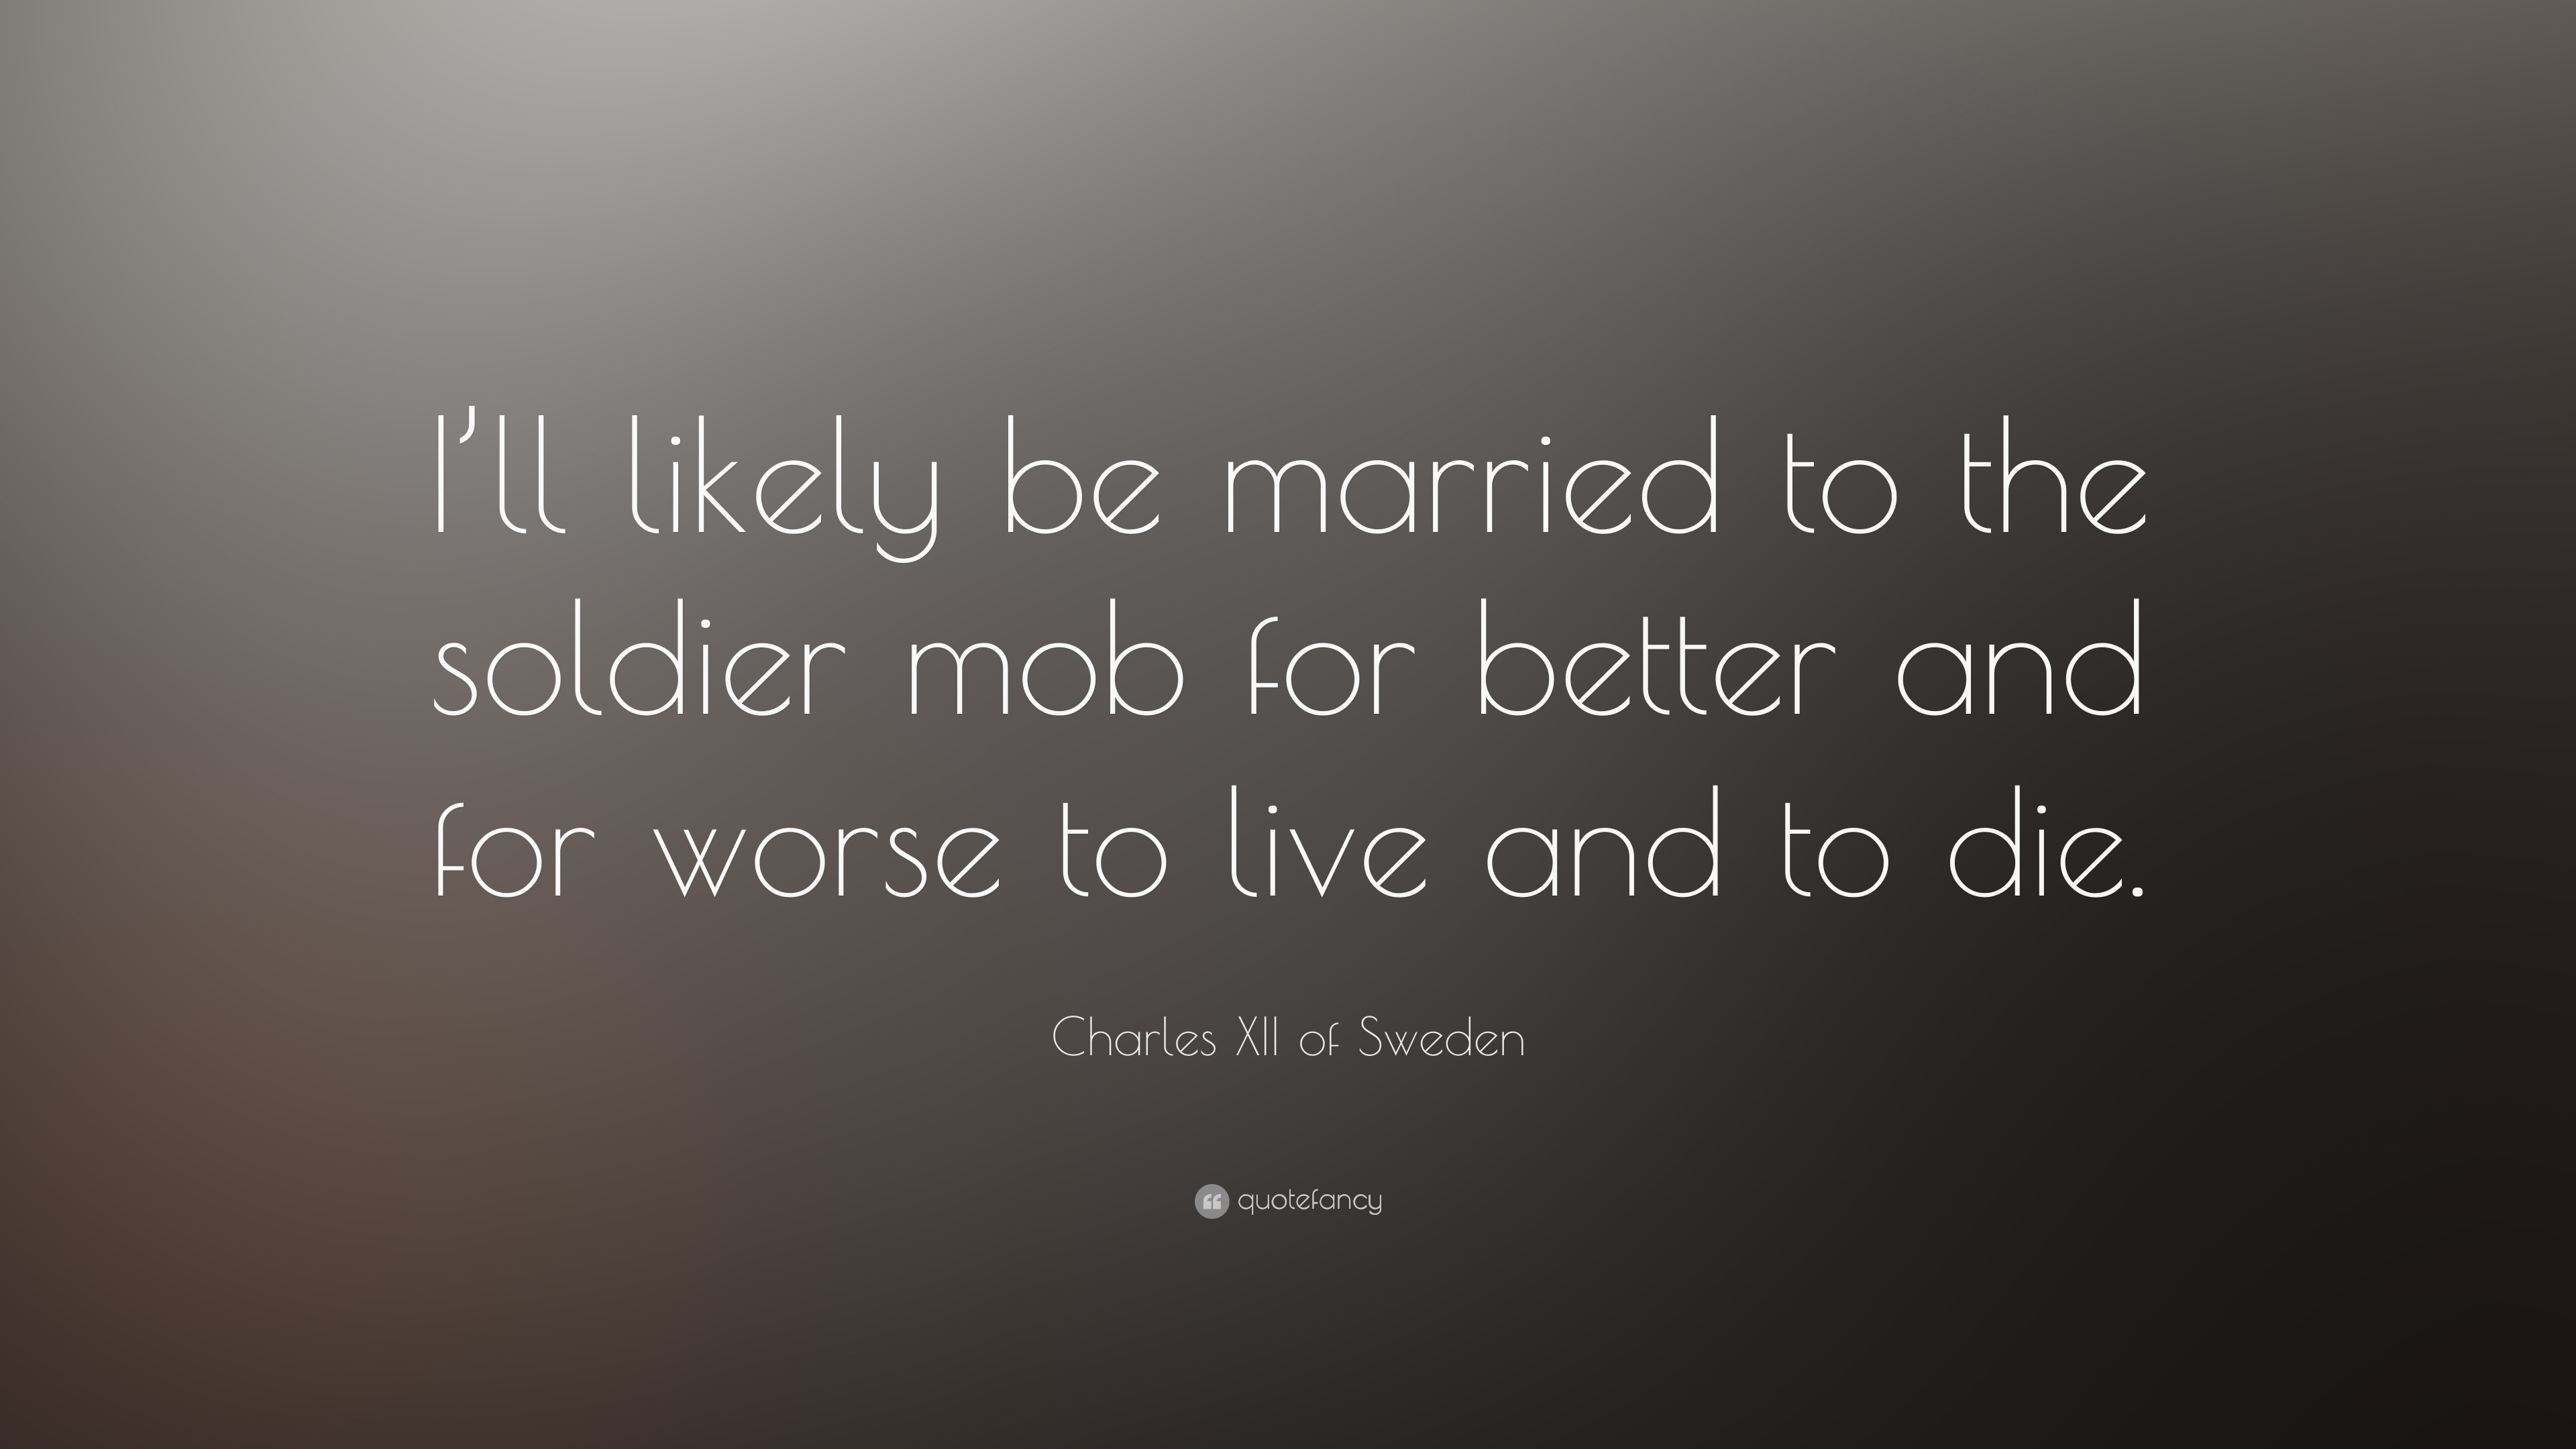 Charles Xii Of Sweden Quote Ill Likely Be Married To The Soldier